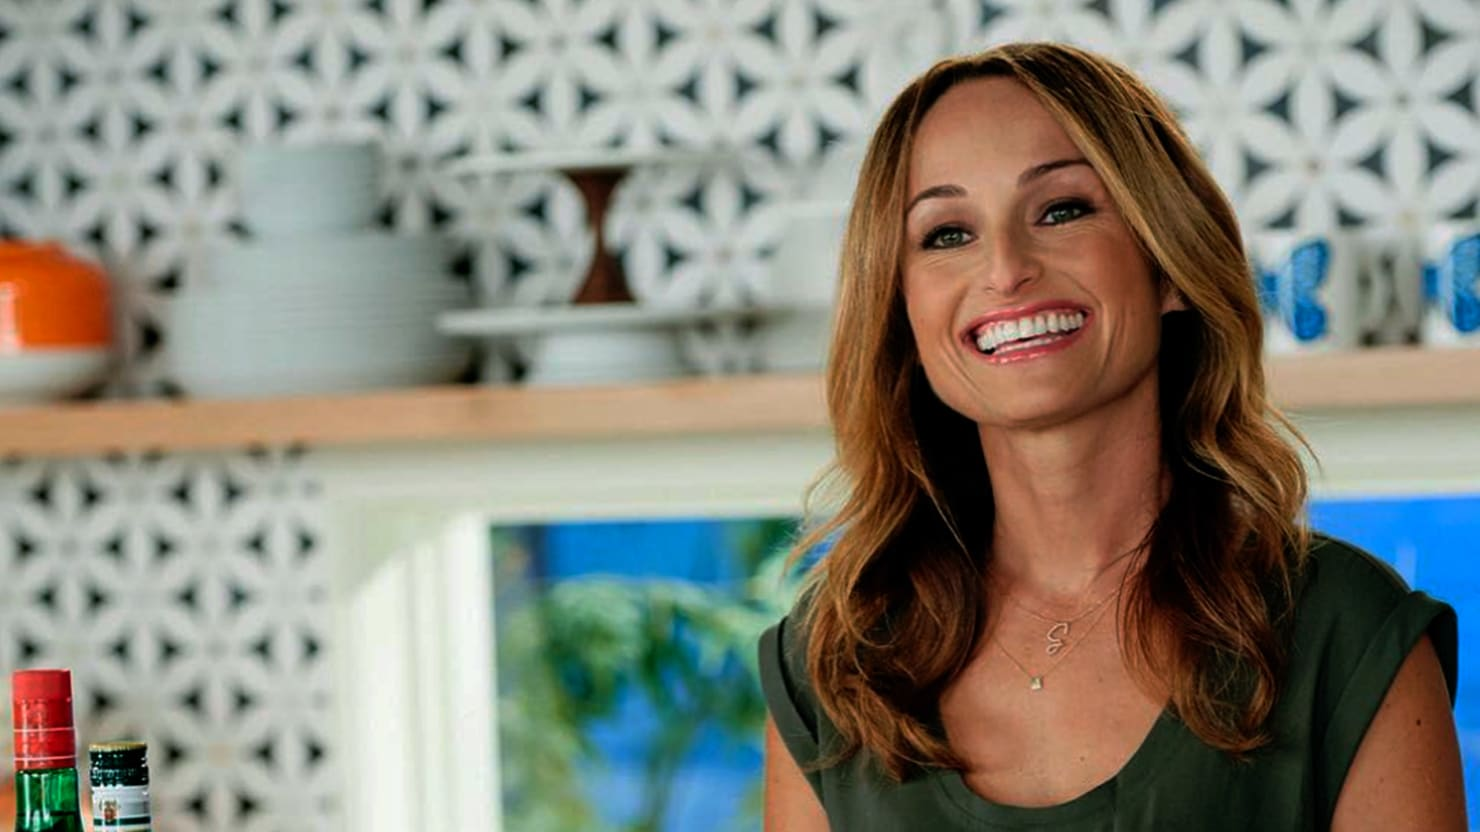 giada de laurentiis essay 27/03/18 | @ i want to be a singer essay how to sing high notes ★★ this young chef got to live her dream with giada de laurentiis currently playing.